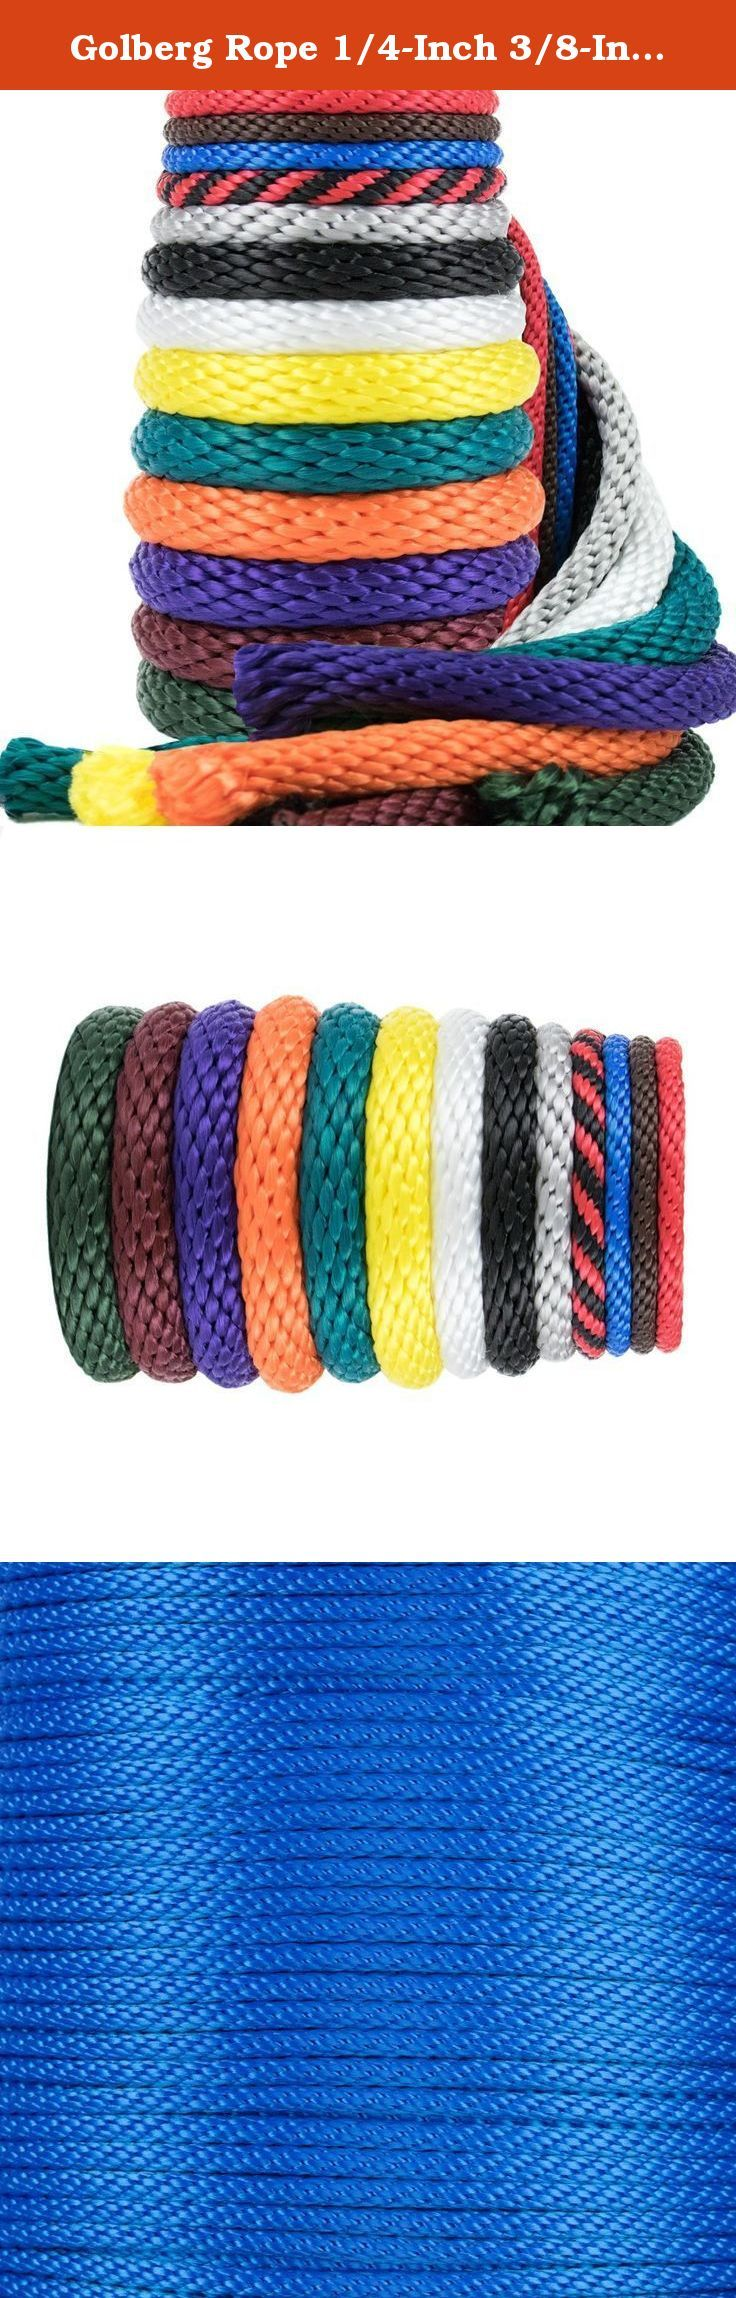 Golberg Rope 1/4-Inch 3/8-Inch 1/2-Inch 5/8-Inch 5/16 - Inch Solid Braid Utility Rope Made in USA - Multifilament Polypropylene MFP Derby Rope Boating Rope - Mildew Resistant - 100 X BLUE. If you're looking for basic, affordable, all-purpose and all-weather utility rope, this is it. Golberg Ropes's Multifilament Polypropylene MFP Rope, you will always be prepared to tie down or hoist up that deer from hunting, tie that pesky hose in your garage & hang it up, secure your boat to the dock…